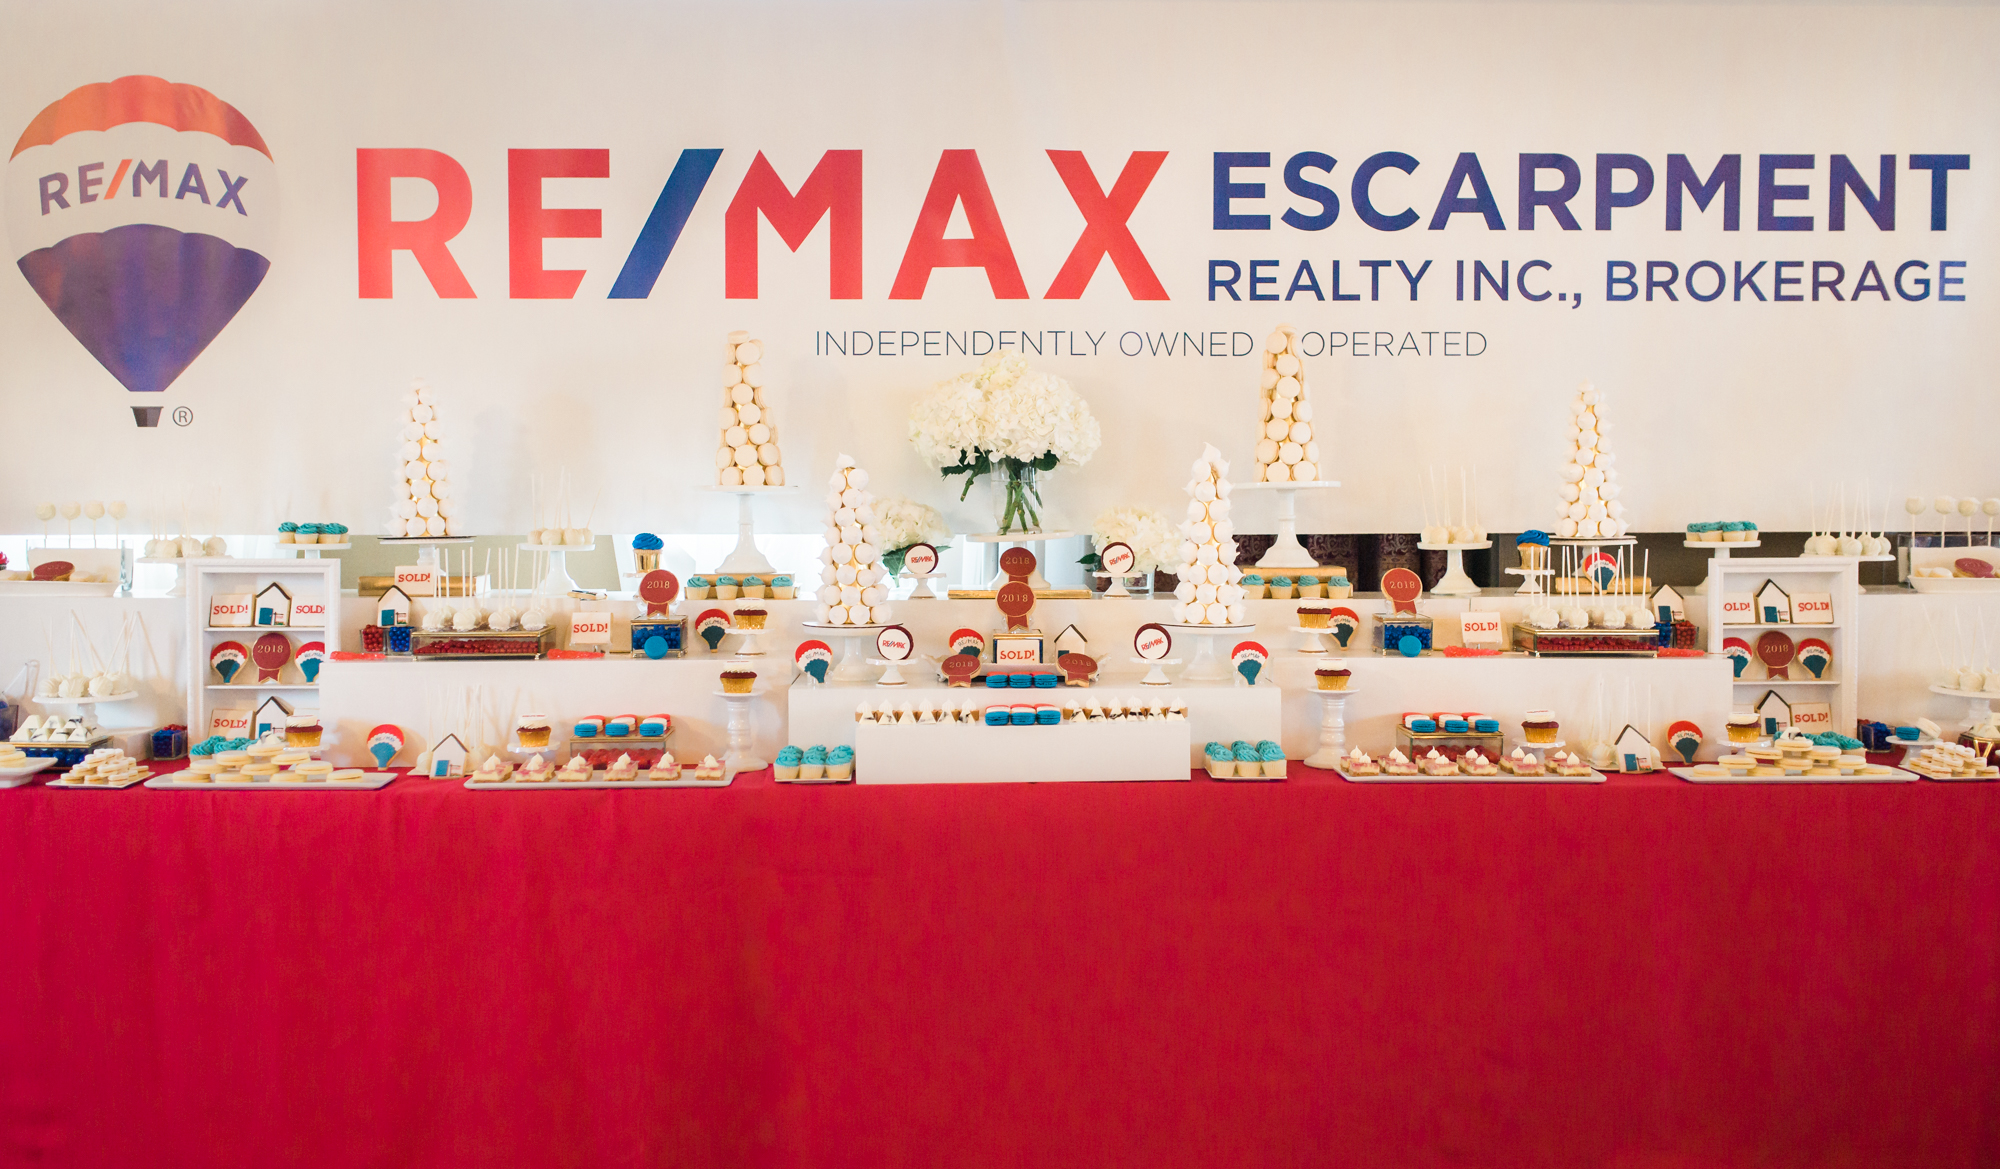 Remax Escarpment Realty Corporate Sweet Table